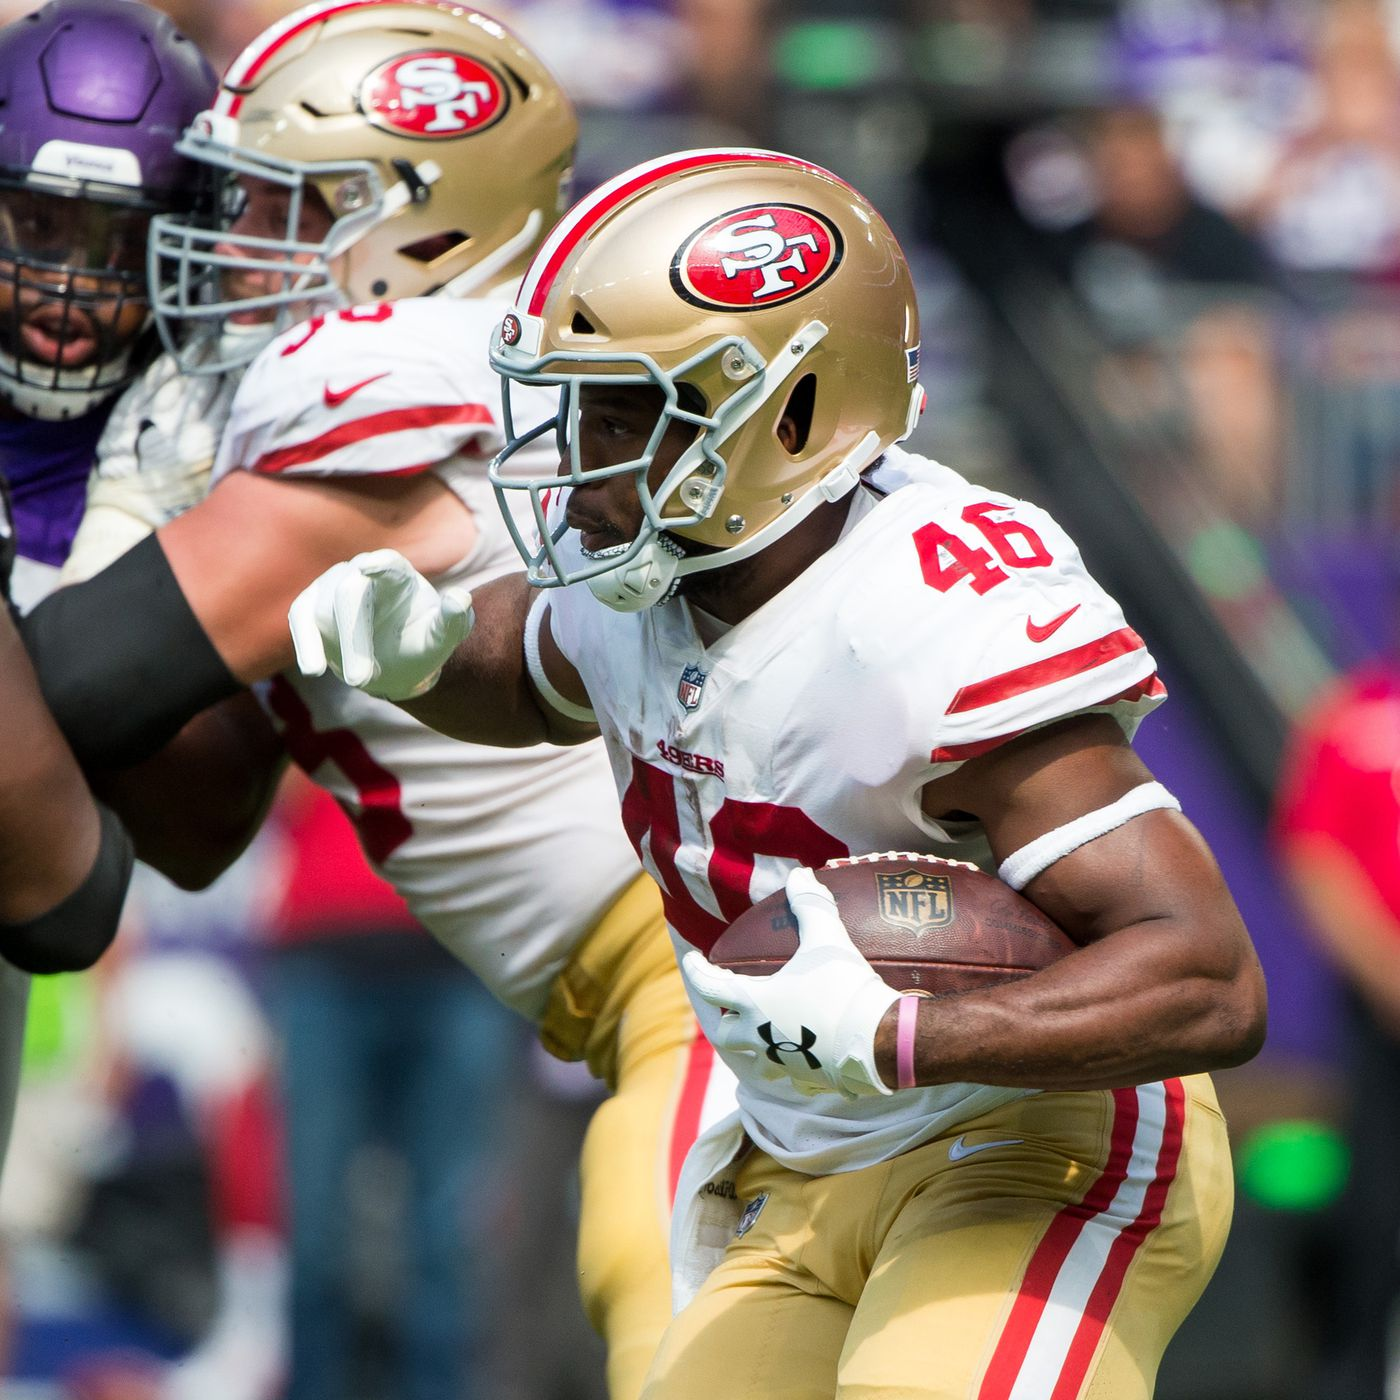 ef56f000300 Vikings 2018  Alfred Morris was reaching for more when he fumbled - Niners  Nation